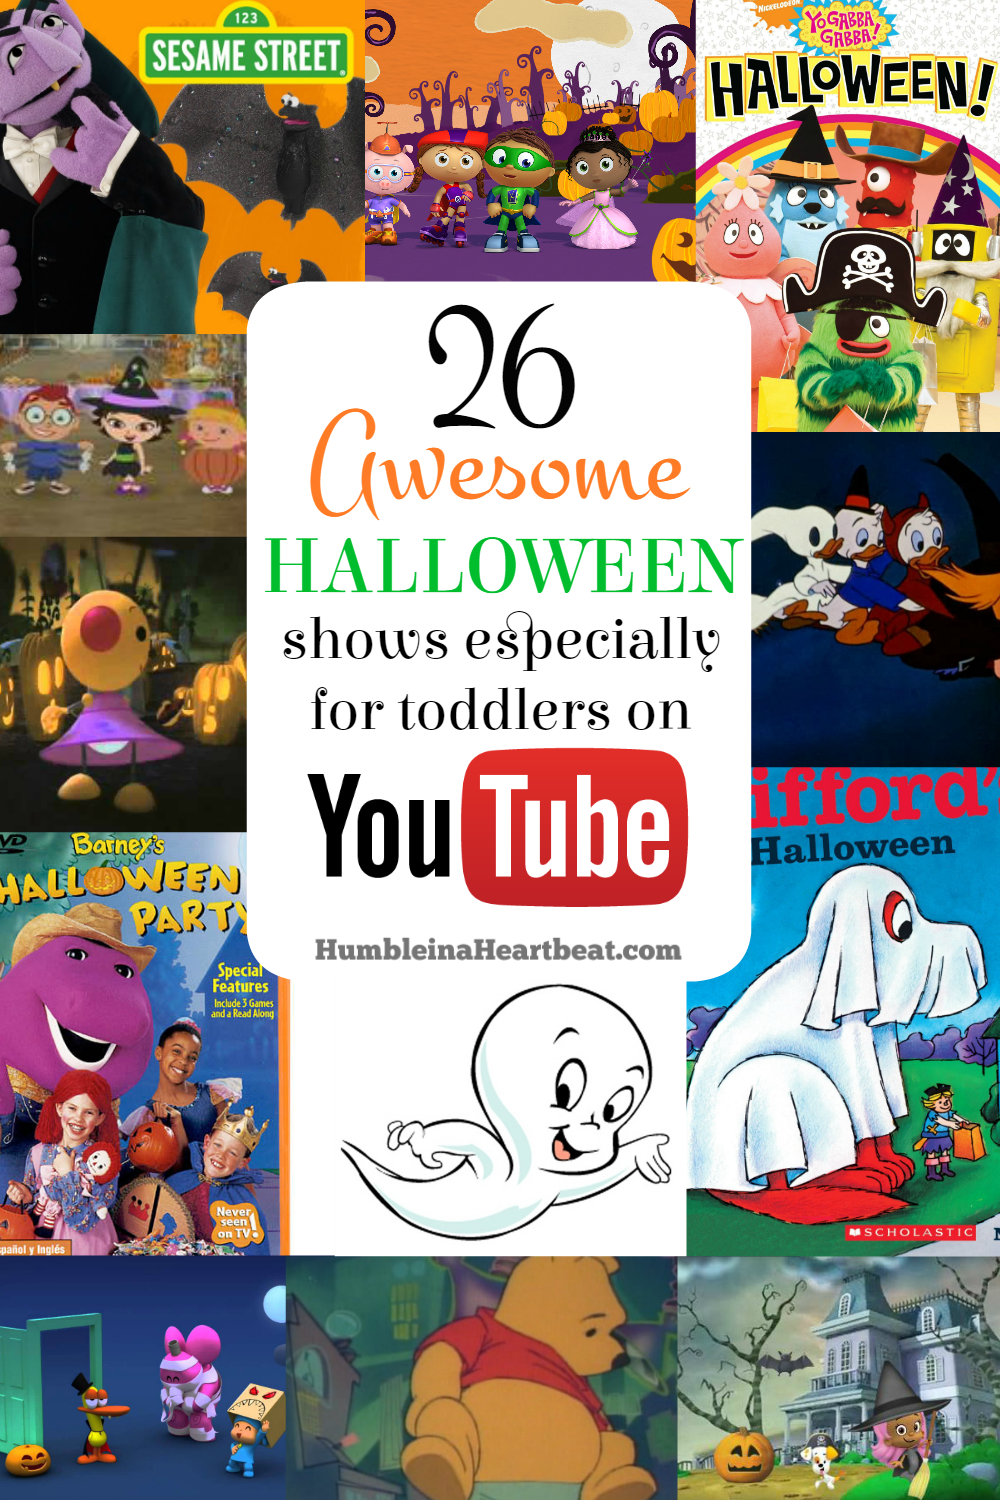 Get your child in the Halloween spirit by letting them watch some spooky shows on YouTube! Perfect for toddlers and preschoolers alike!